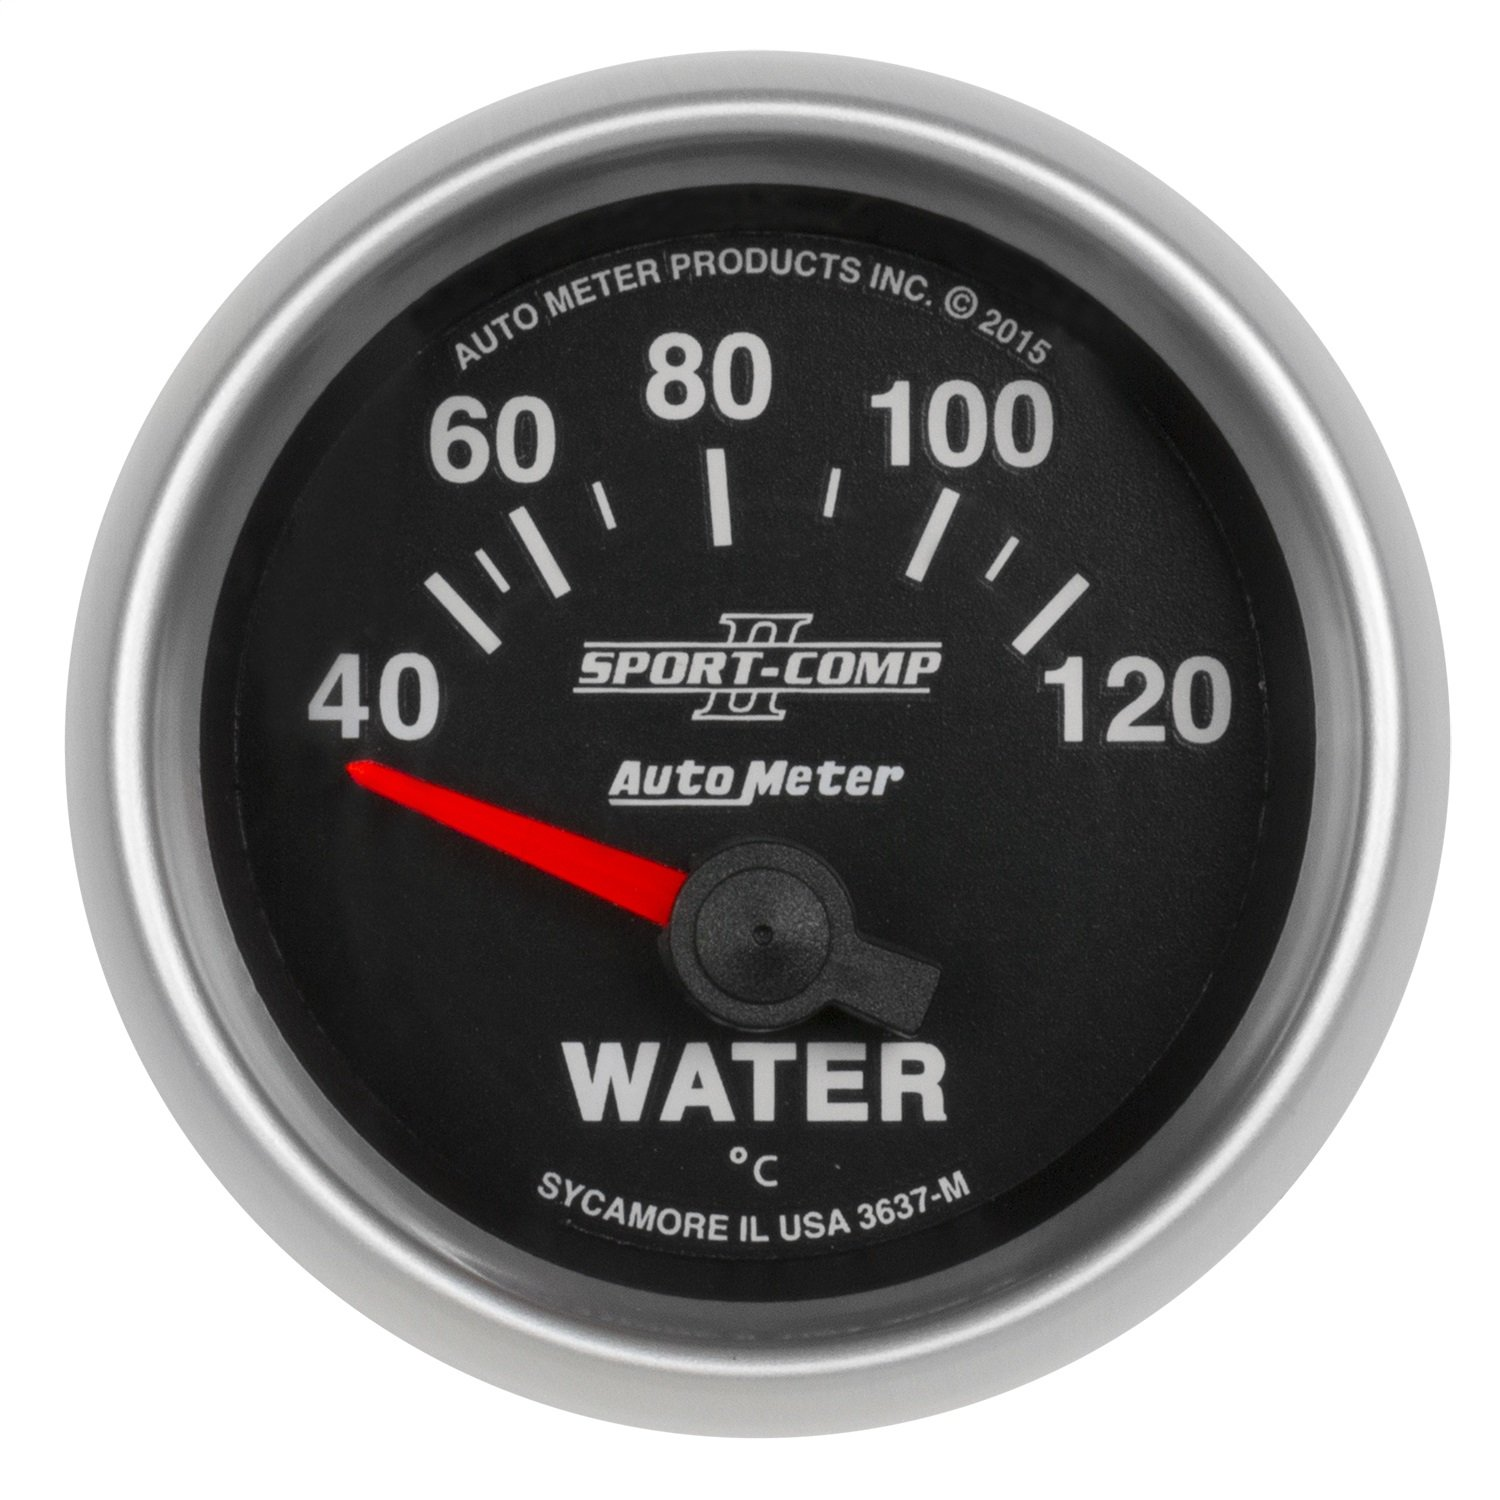 AutoMeter 3637-M Sport-Comp II Electric Water Temperature Gauge 2-1/16 in. Black Dial Face Auto Meter